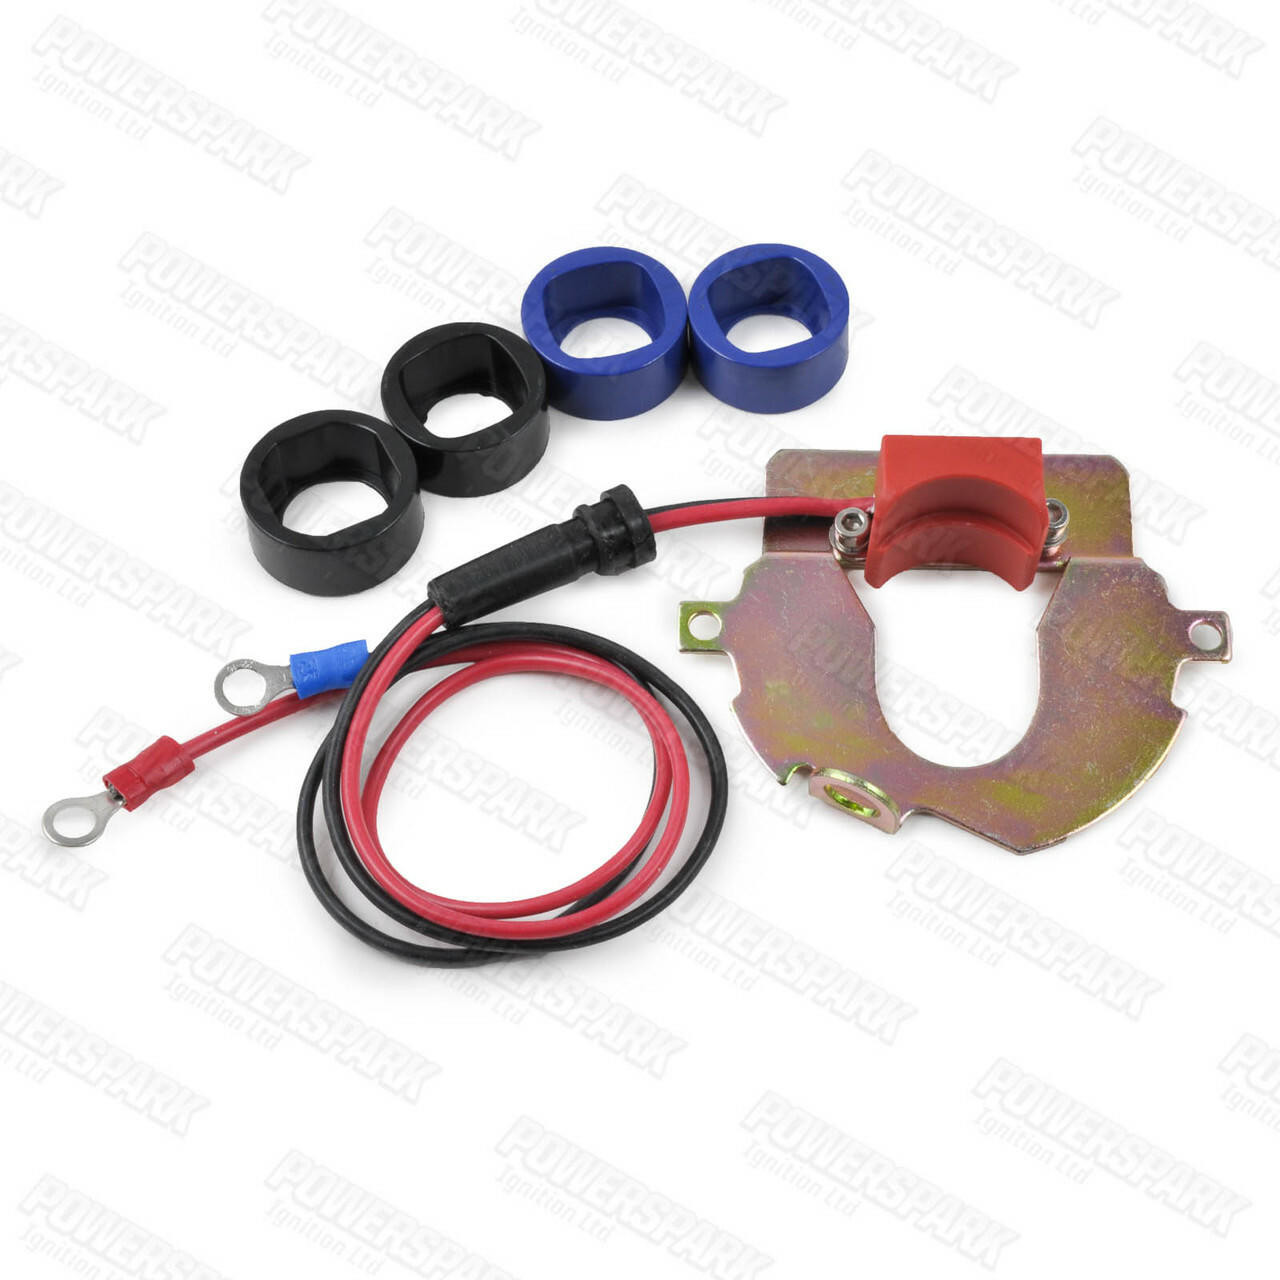 Powerspark Powerspark Electronic Ignition Kit for Lucas DKY4A and DKY4HA Distributor K31